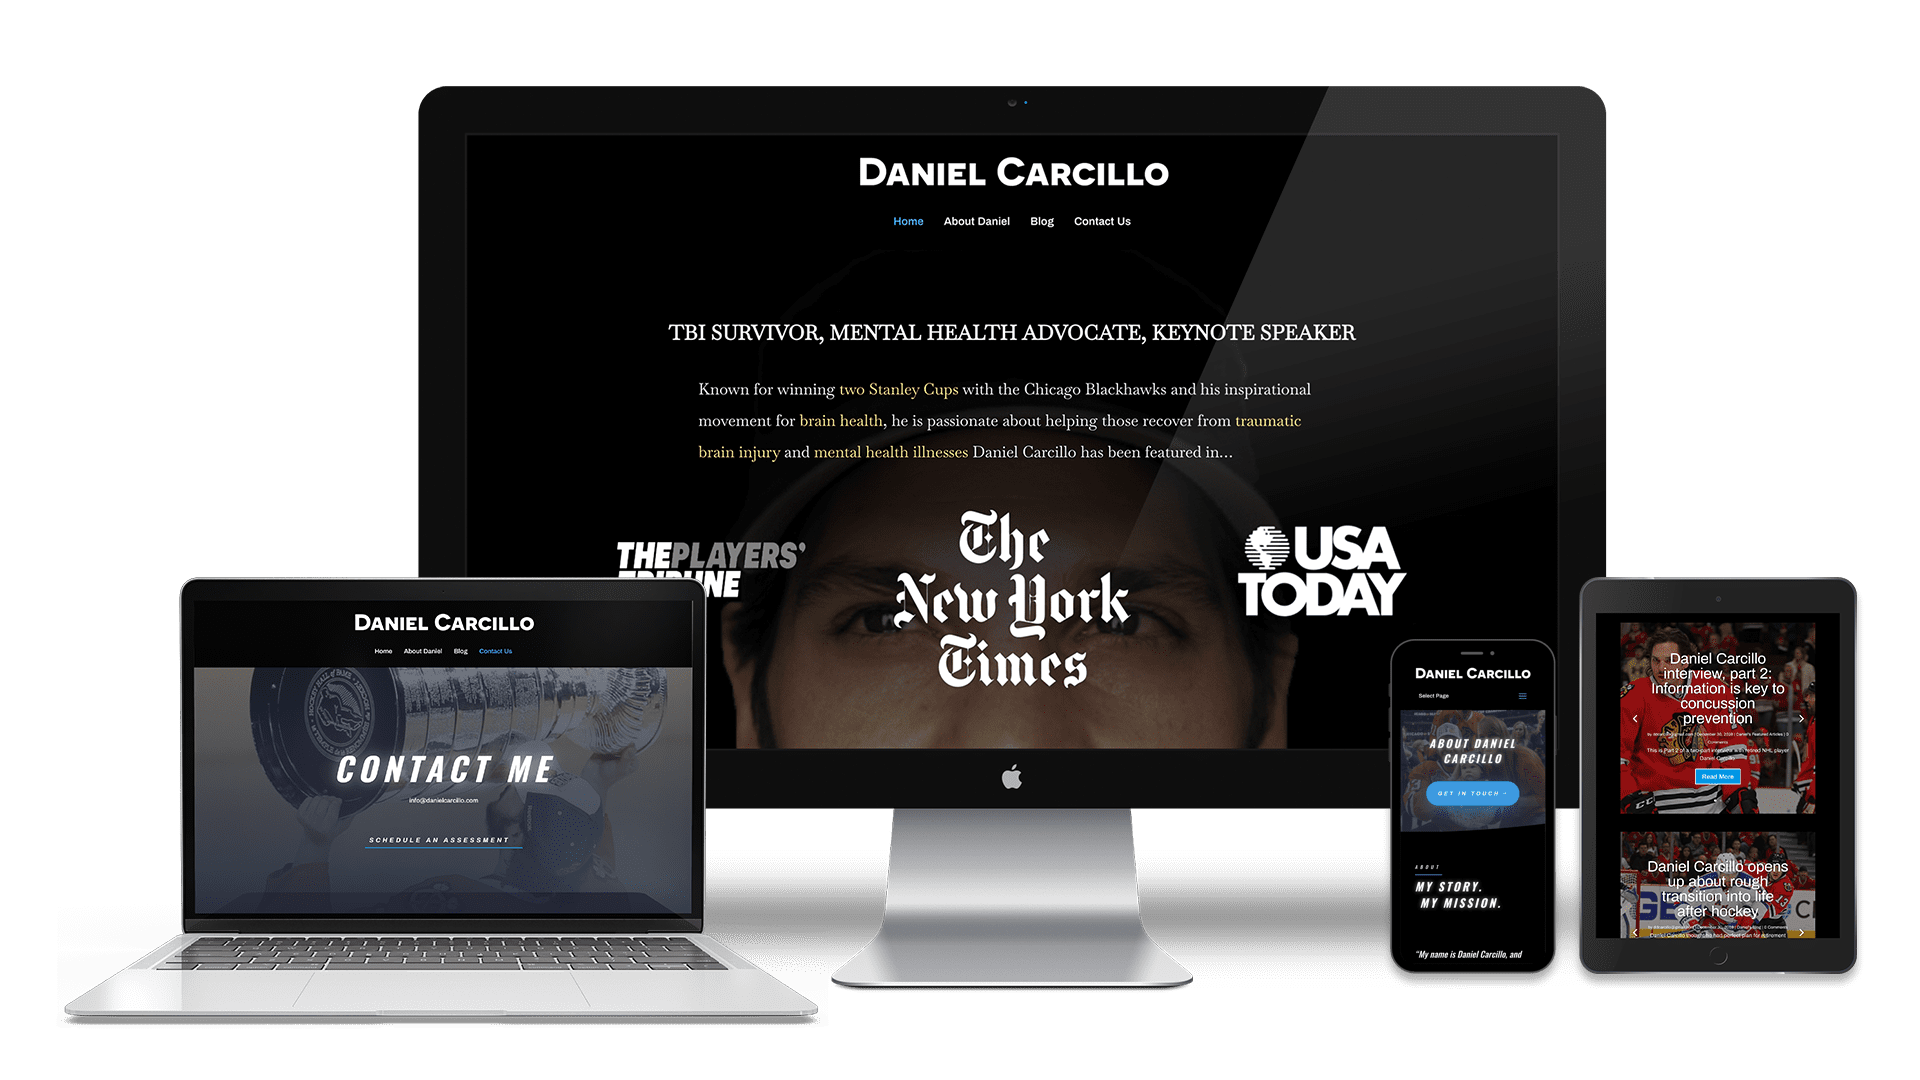 Daniel Carcillo Website